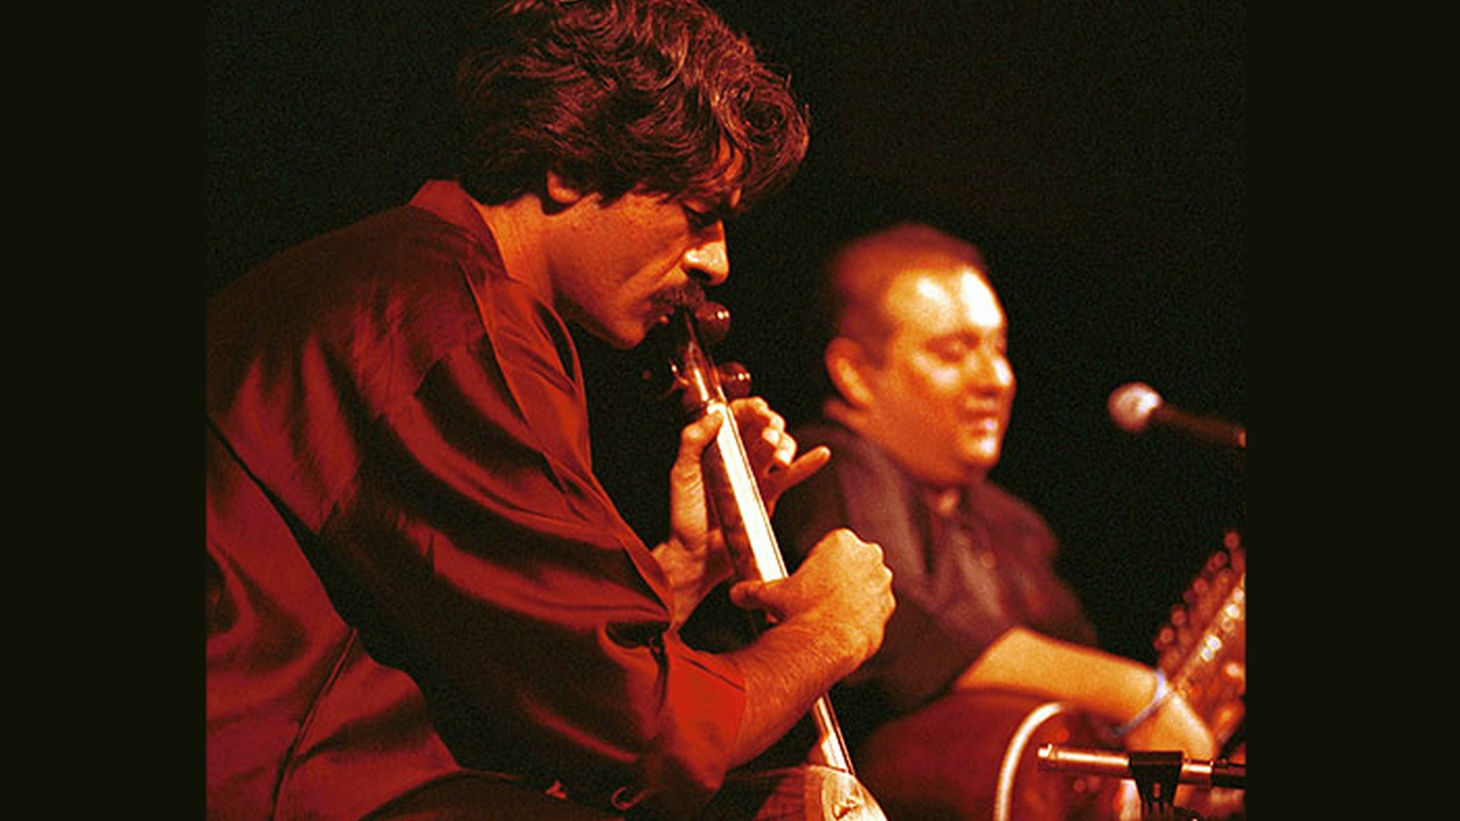 The Grammy Award-winning Ghazal Ensemble reunite to perform their distinctive mix of Persian and Hindustani classical music, recalling age-old traditions which have been historically and culturally intertwined for centuries.